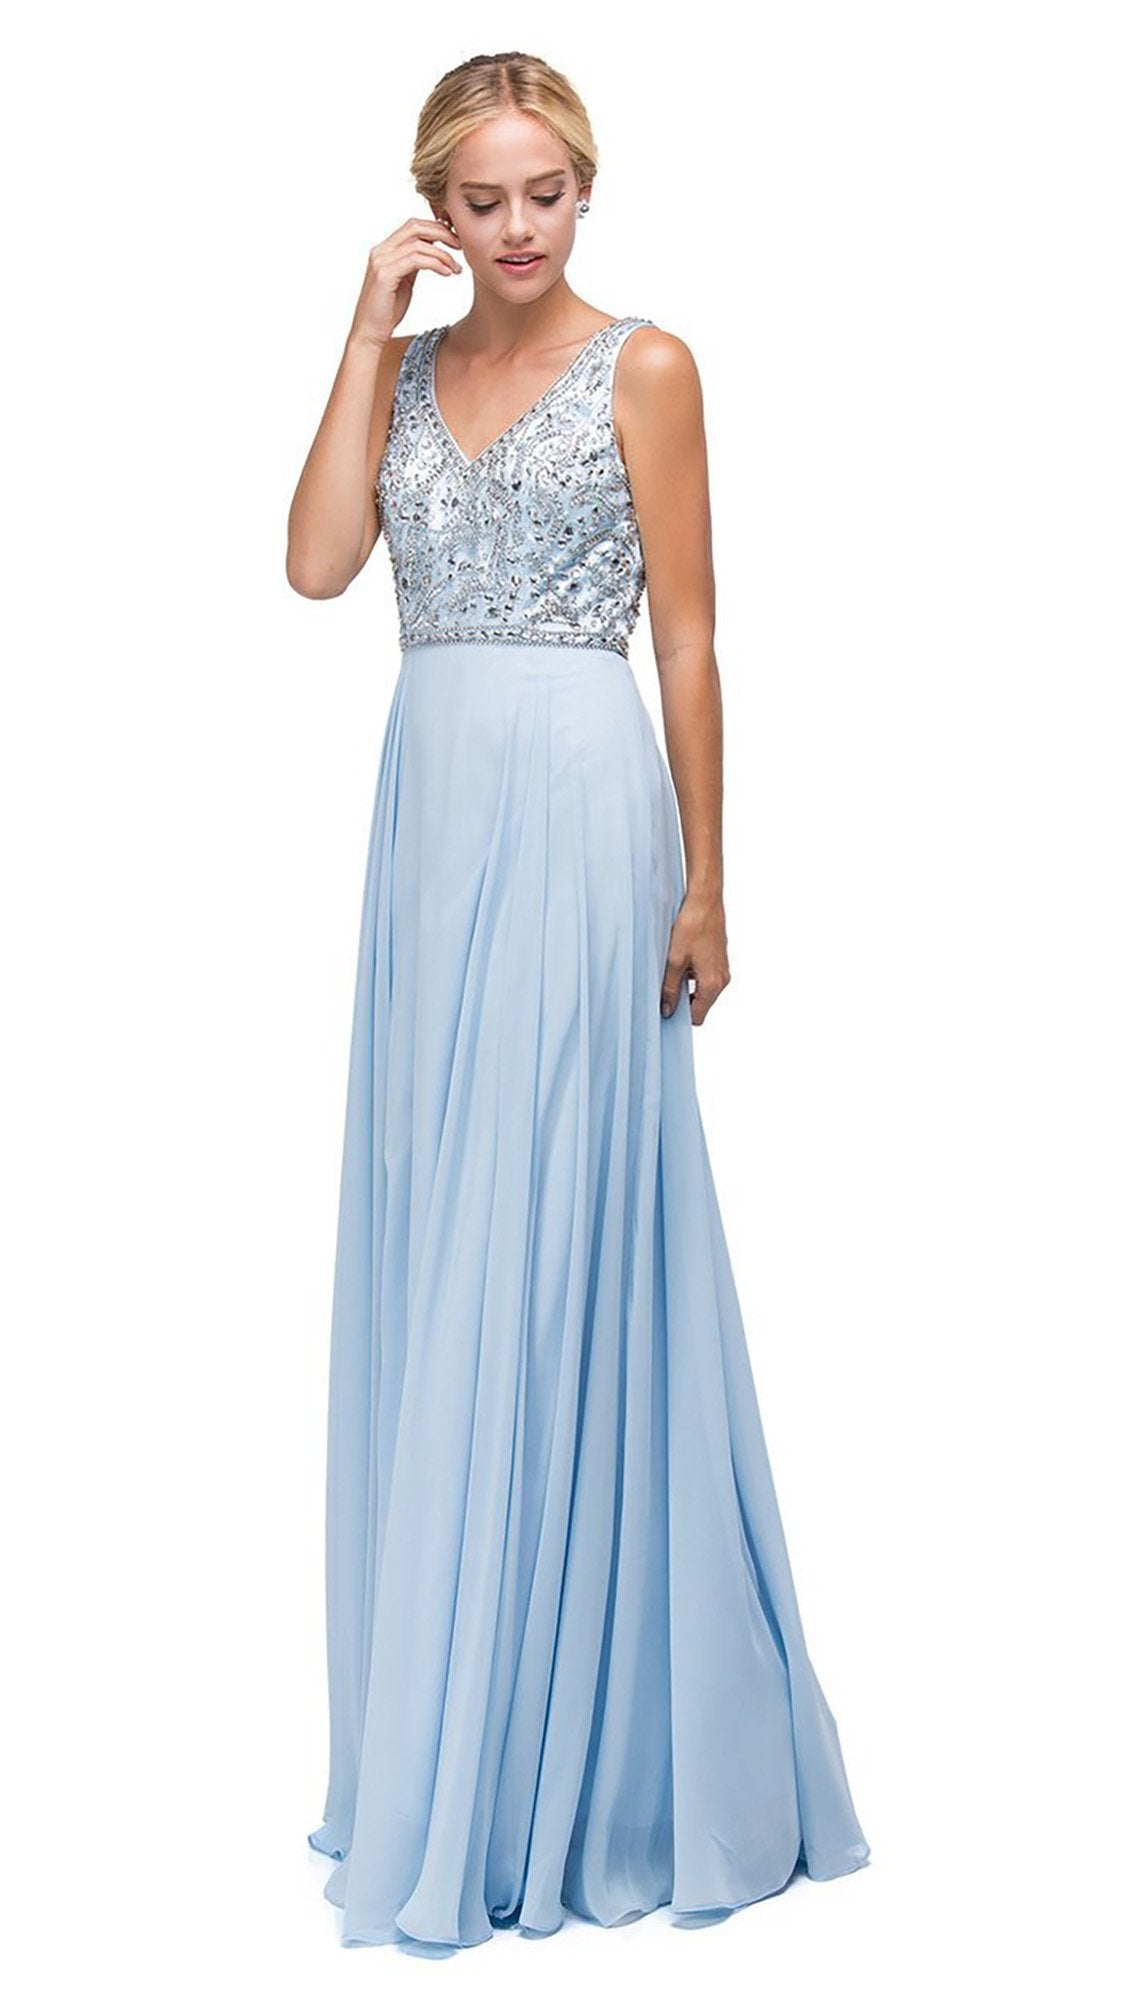 Dancing Queen - 9589SC Jeweled Bodice Chiffon Long Dress